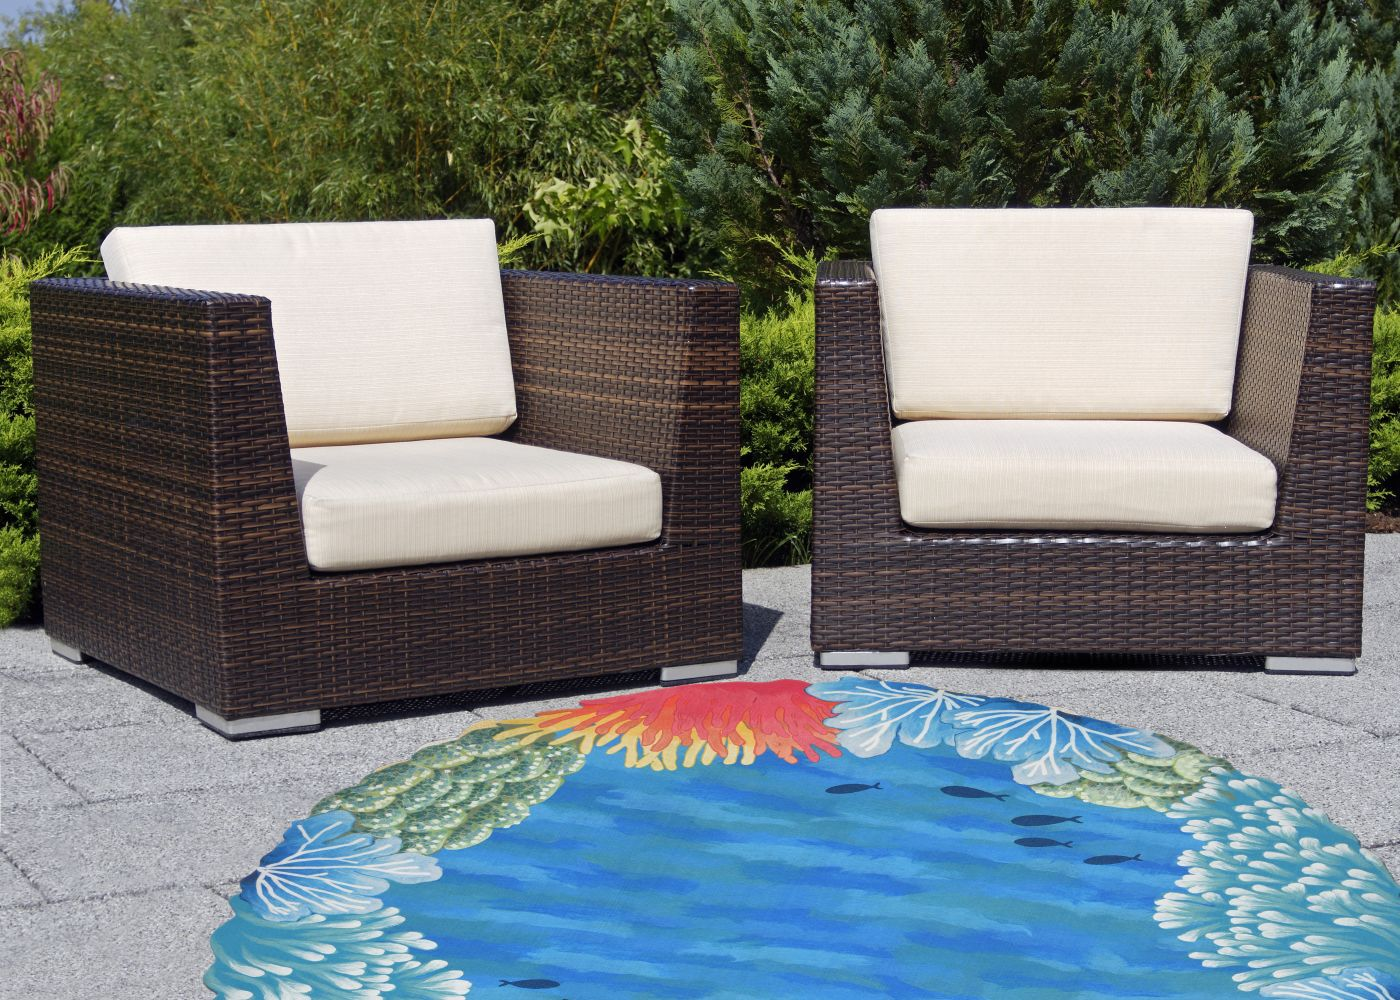 Liora Manne Visions Iv Casual Blue 8'0″ x 8'0″ Round VGHD8413703